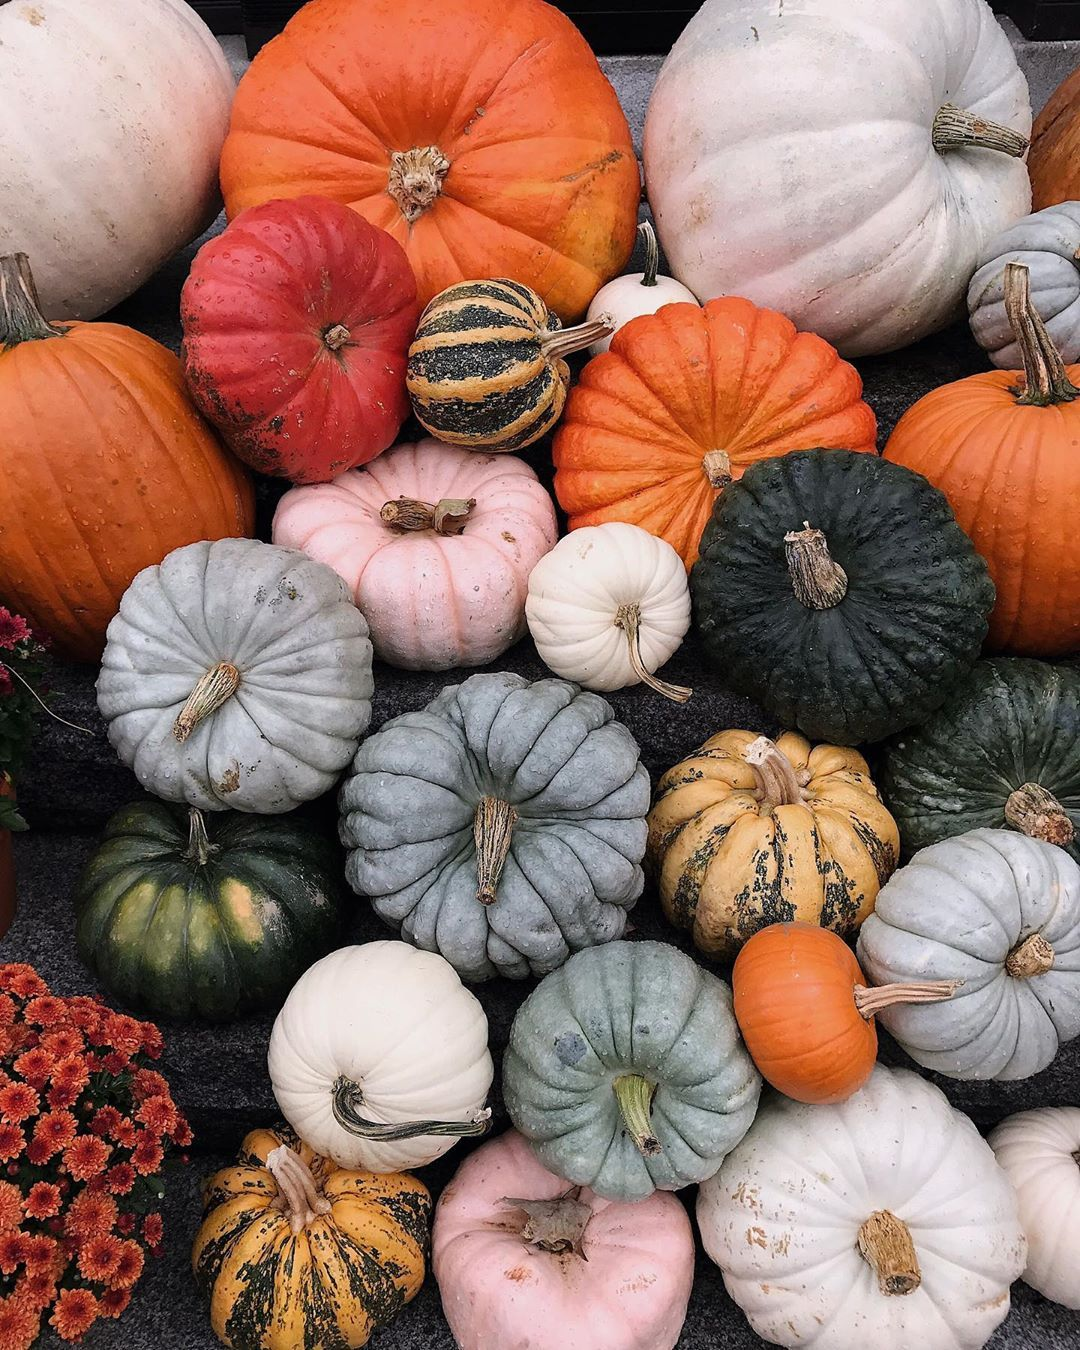 Pin by Abigail Vork on SEASONS (With images) | Autumn ...